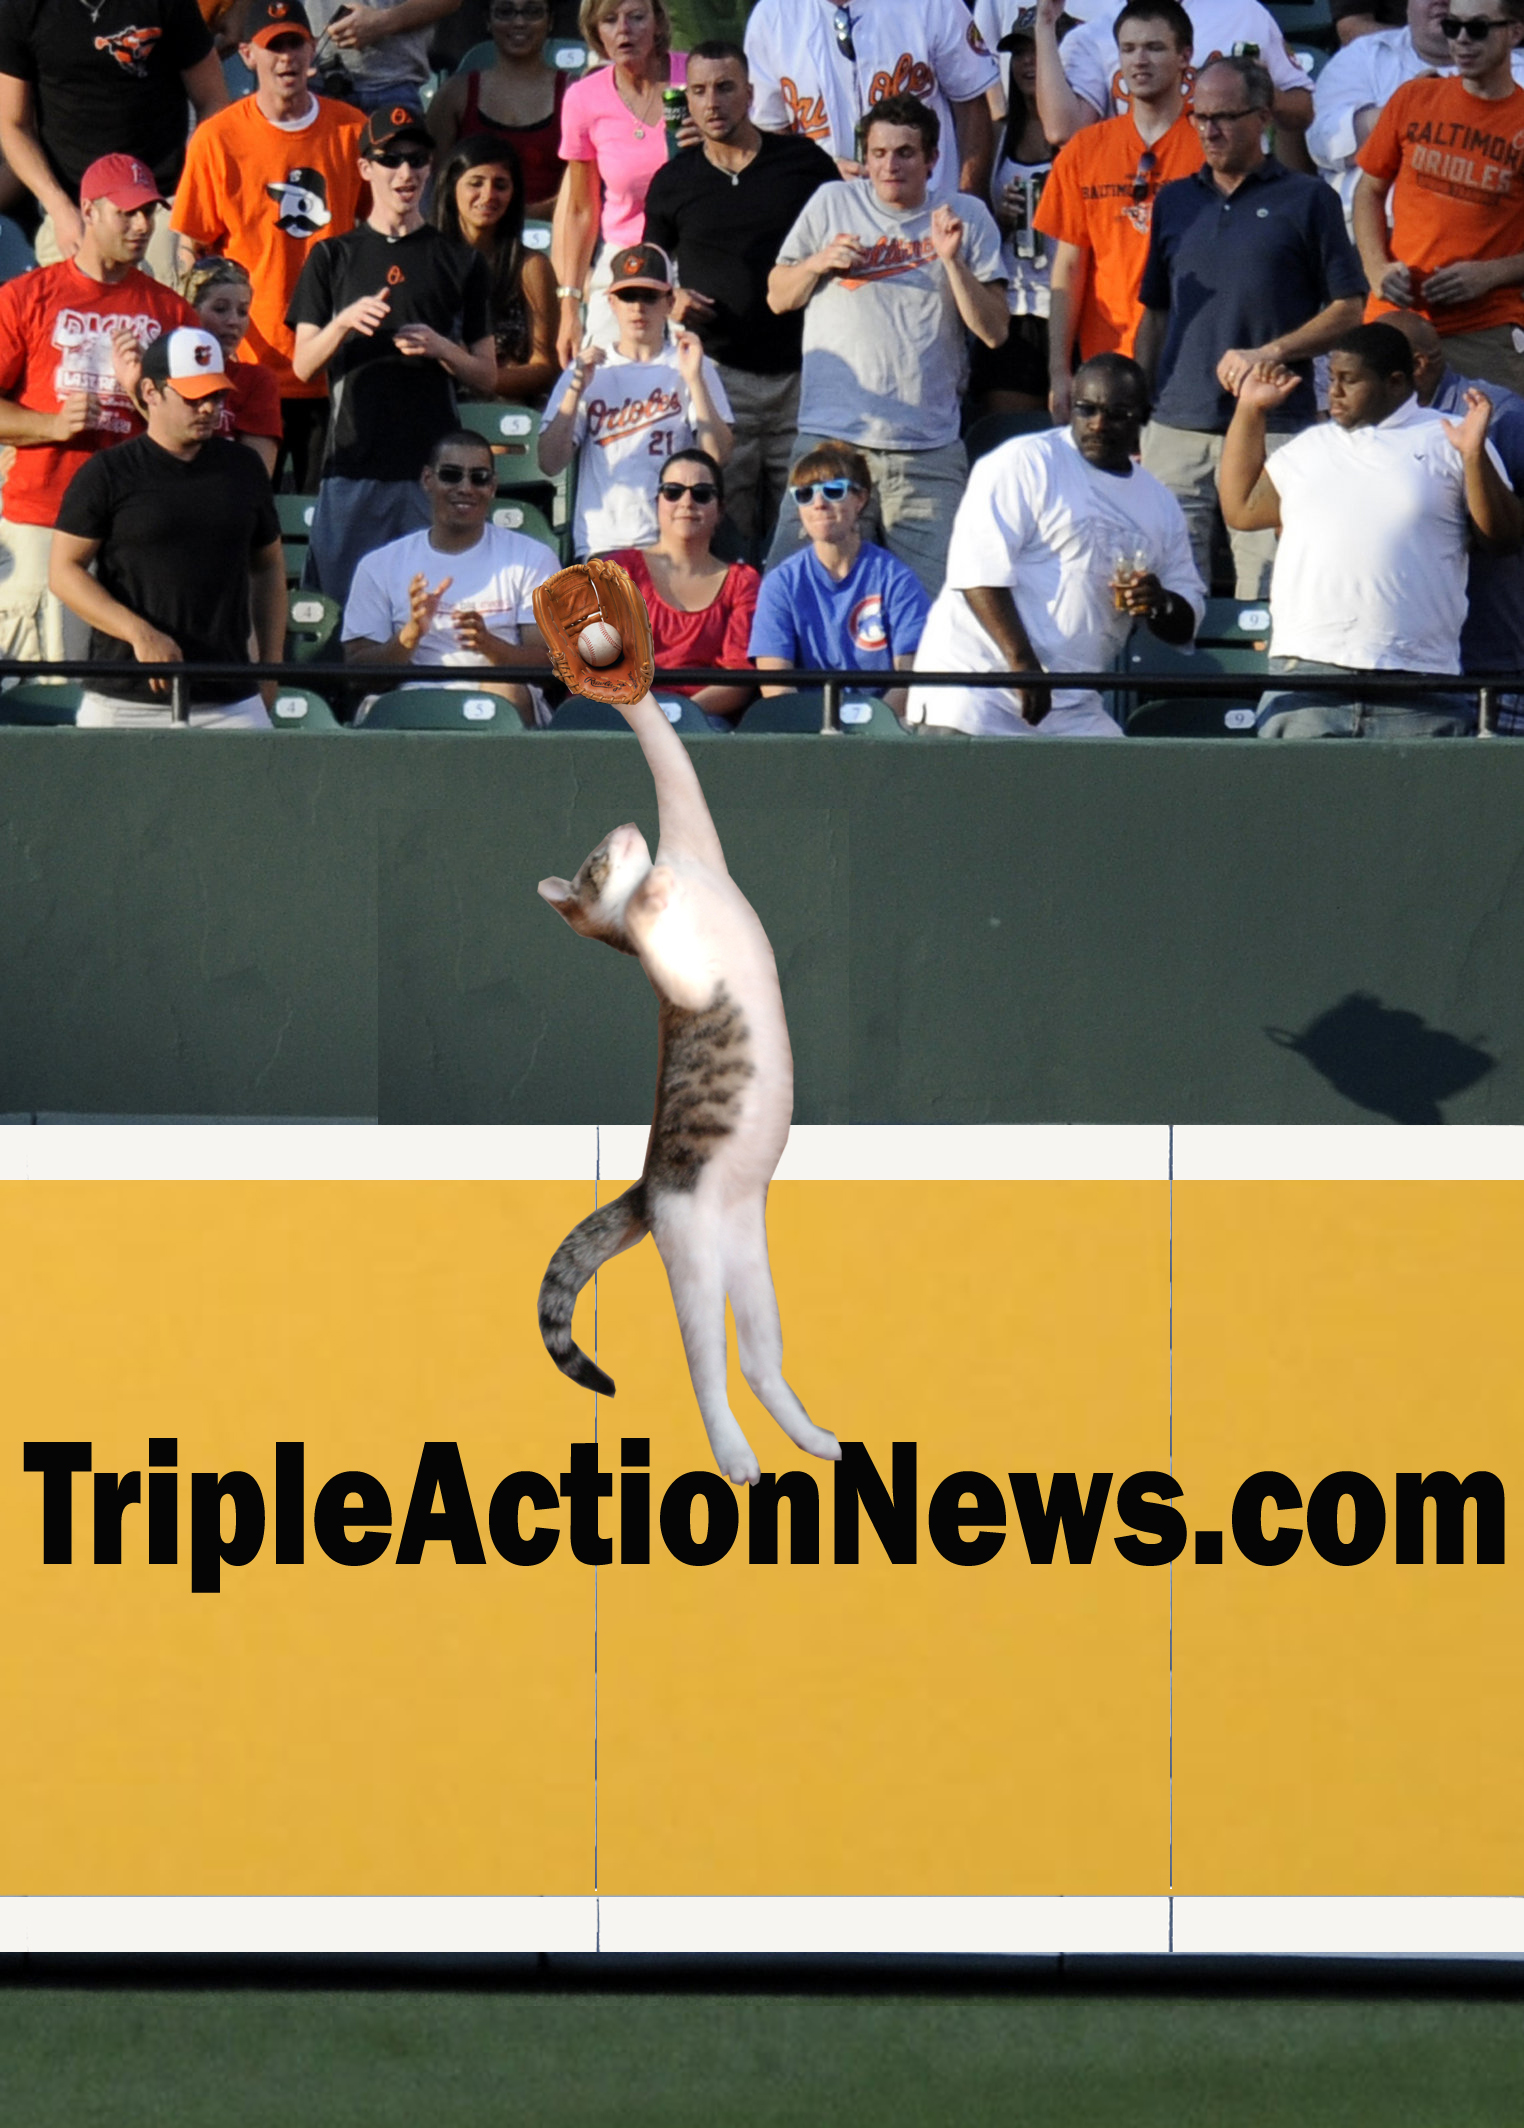 Amazing! I just learned that my cat, Elwood, played center field for the Tigers back in 2007. Here he is robbing Alex Rodriguez of a game-winning home run in a 2-1 win over the Yankees.